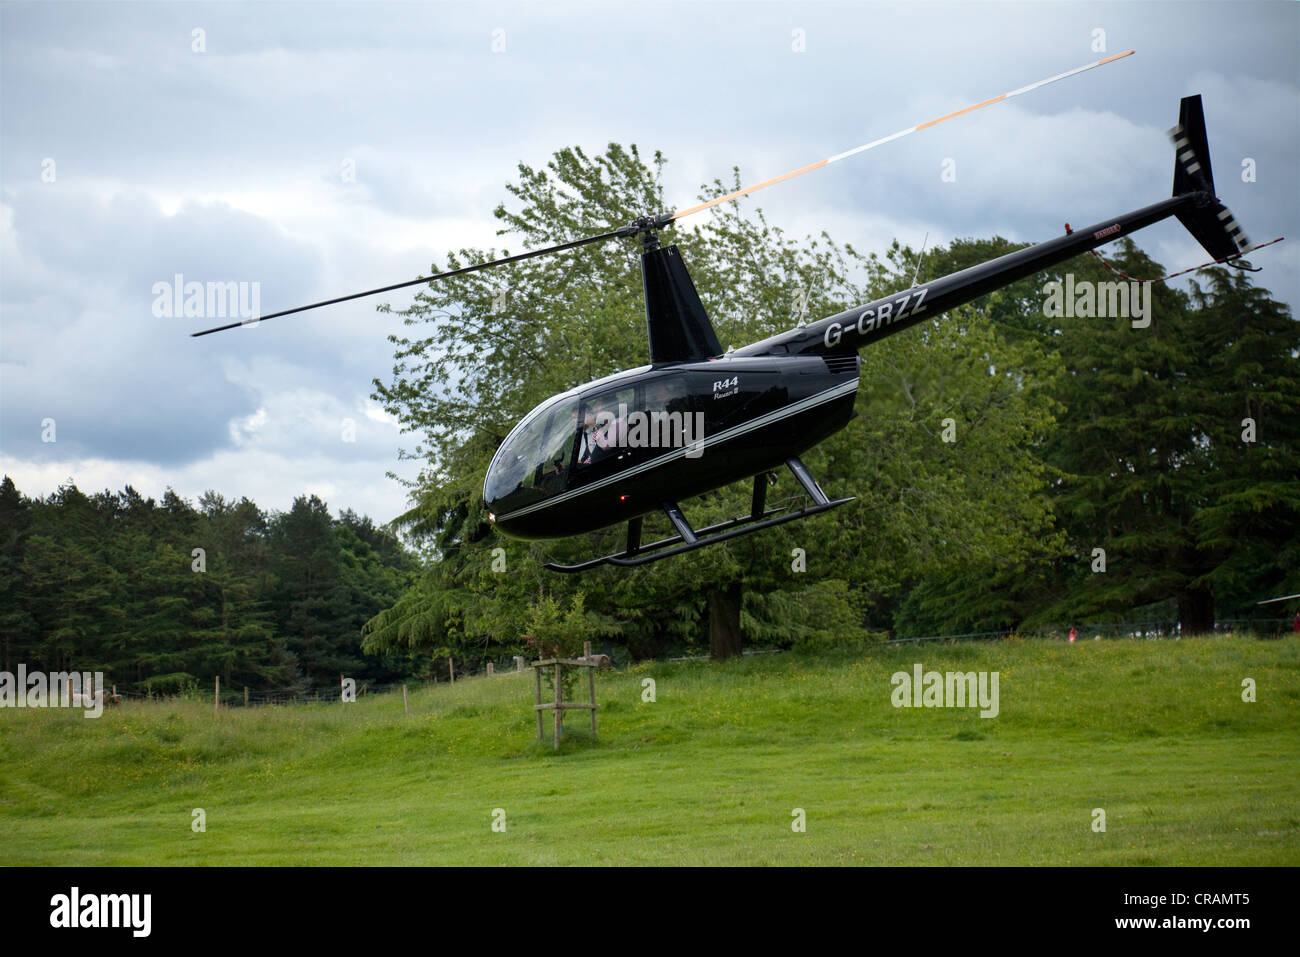 A R44 Raven 91 aircraft G-GRZZ. Robinson Helicopter taking off from Cholmondeley Pageant of Power 2012, Cheshire, - Stock Image